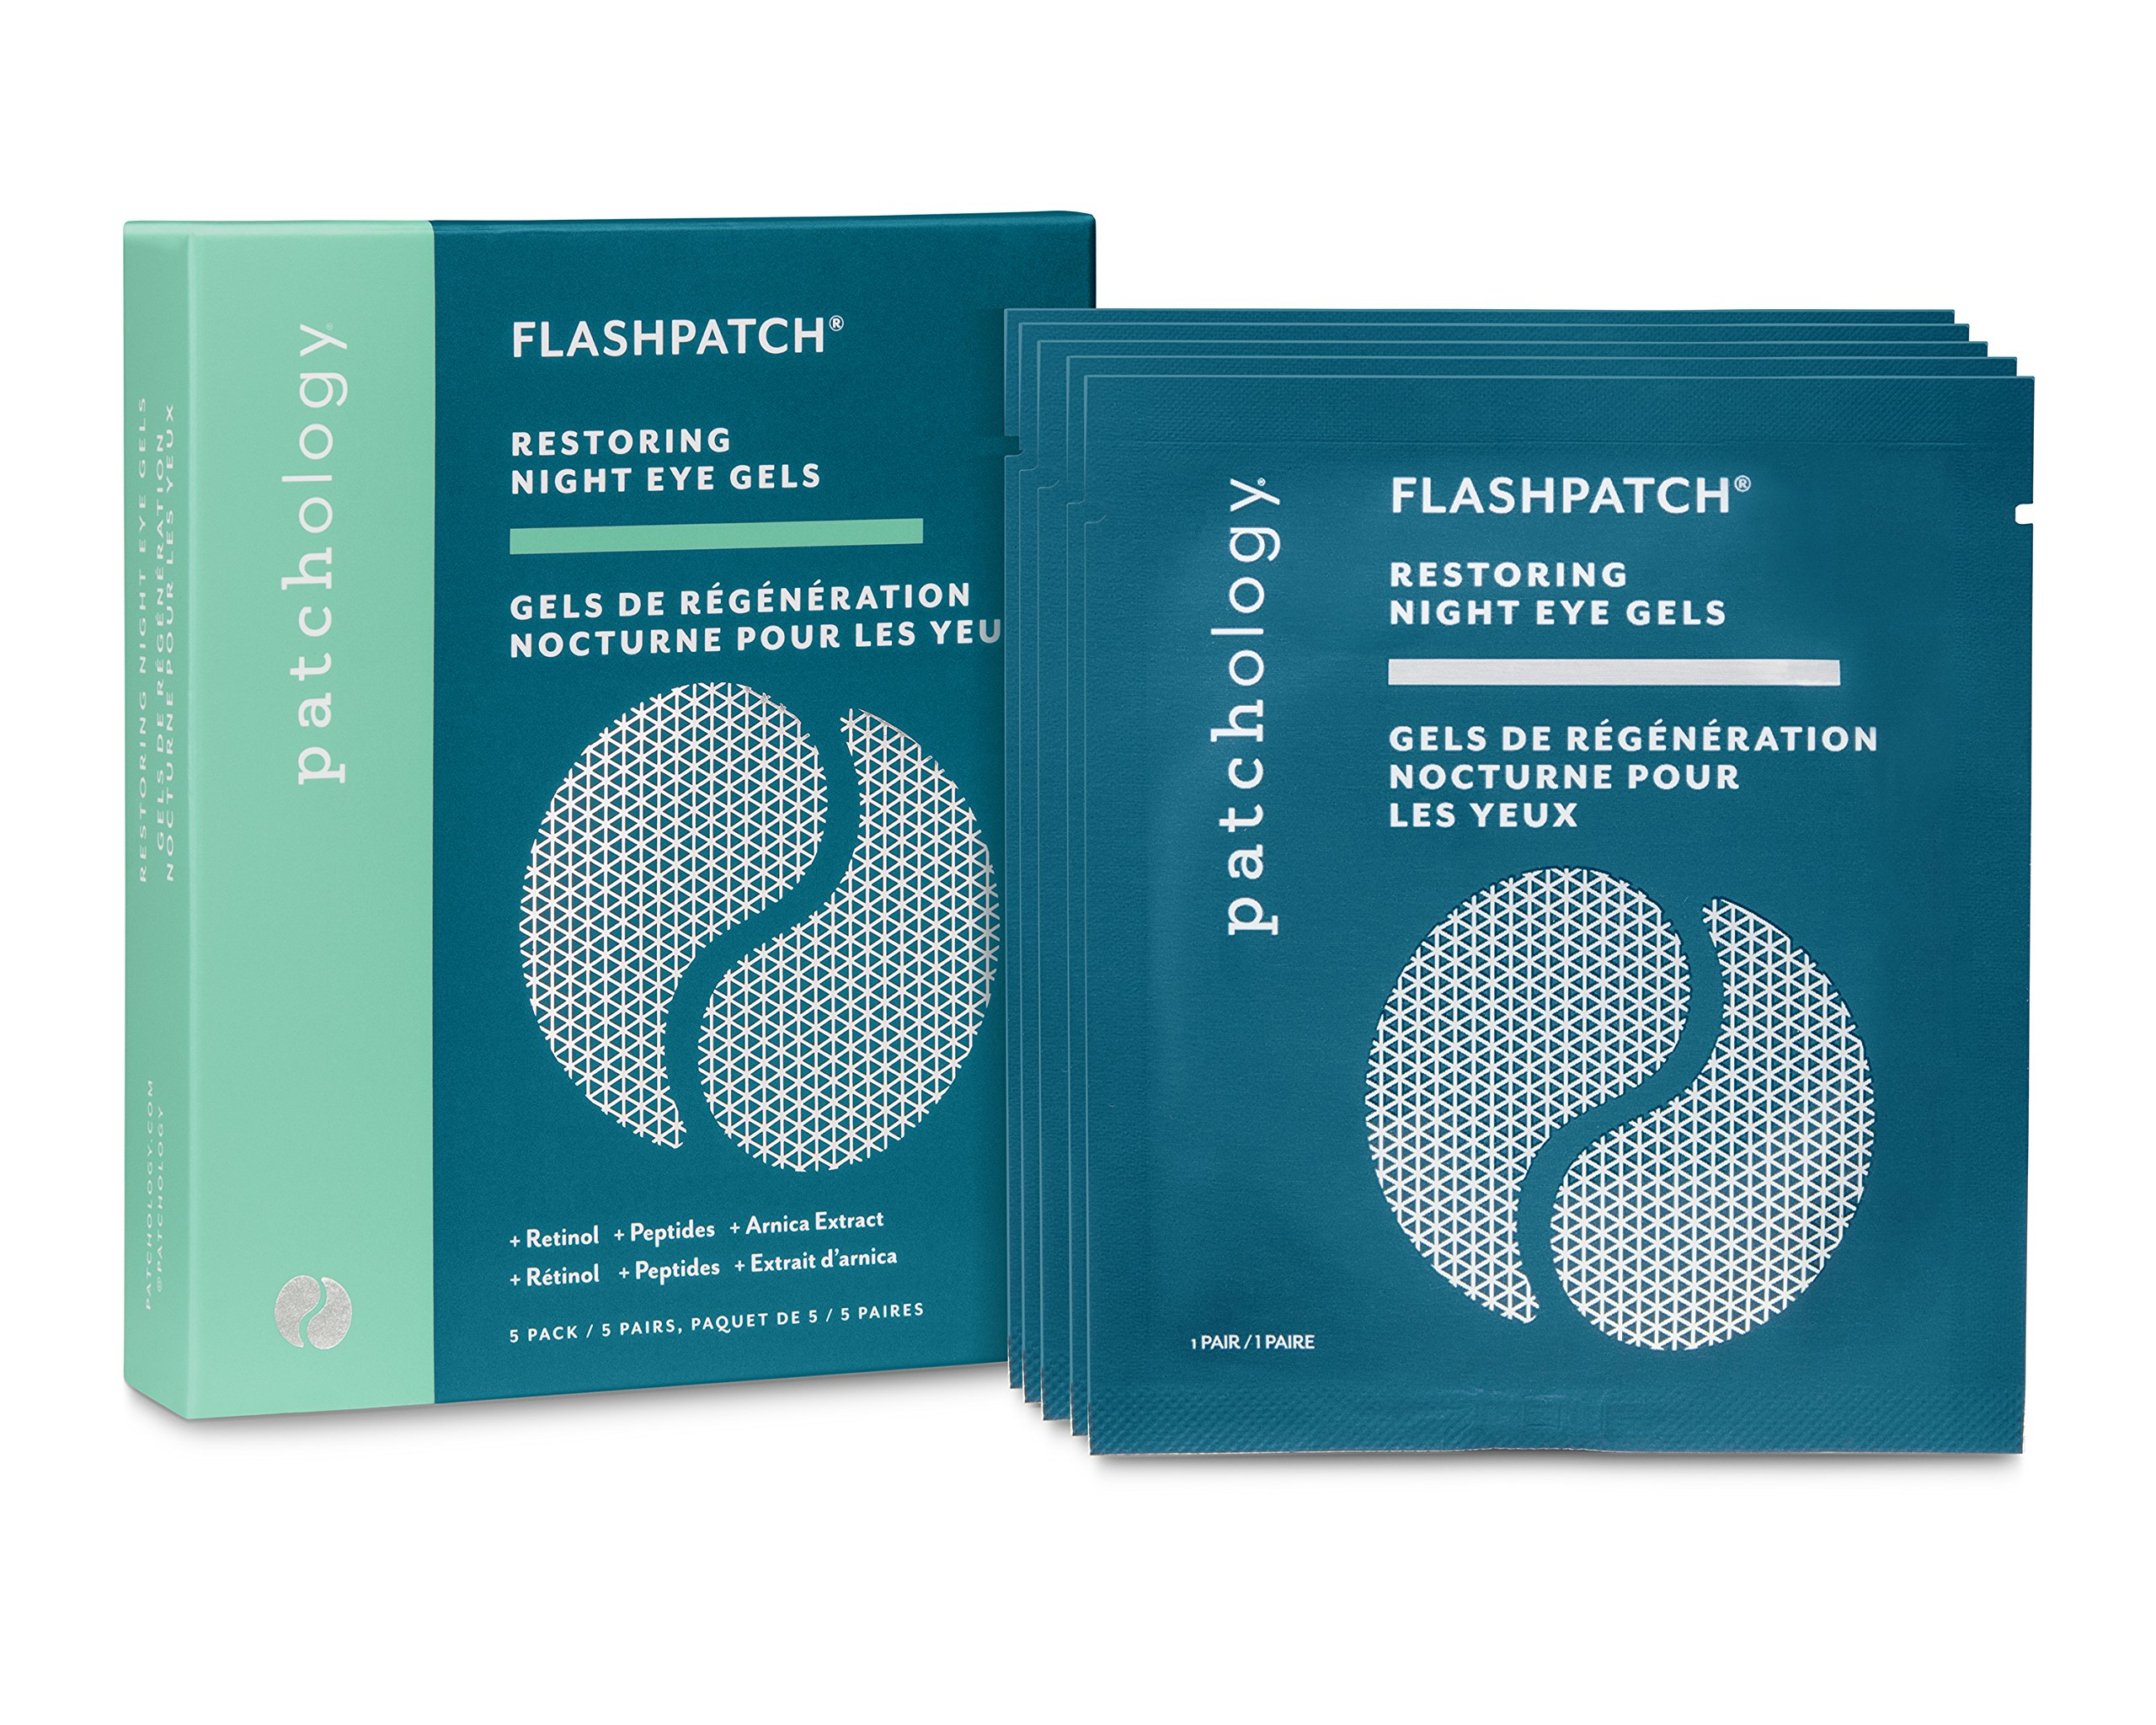 Patchology FlashPatch Restoring Night Eye Gels for Dark Circles, Fine Lines - w/ Retinol, Peptides, Arnica, Squalane - 5 Pairs/ Box by Patchology